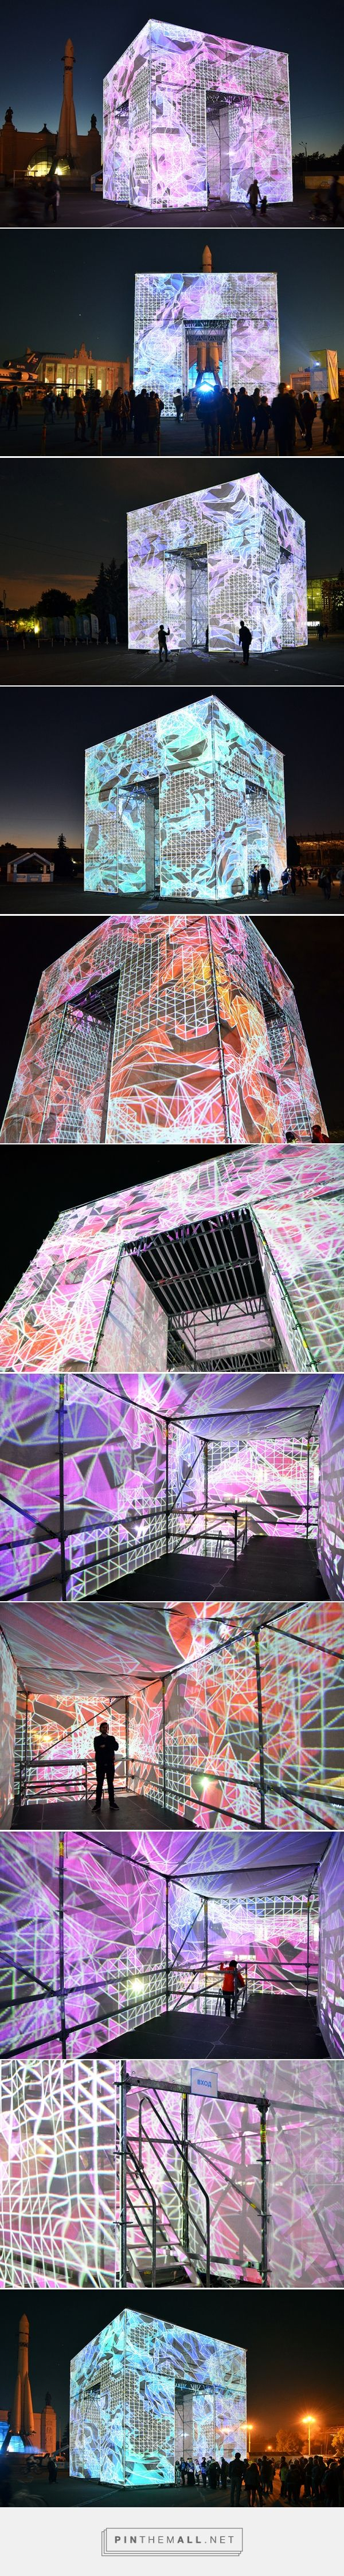 marcos zotes sites immersive digital P-cube in moscow's VDNKh park - created via https://pinthemall.net